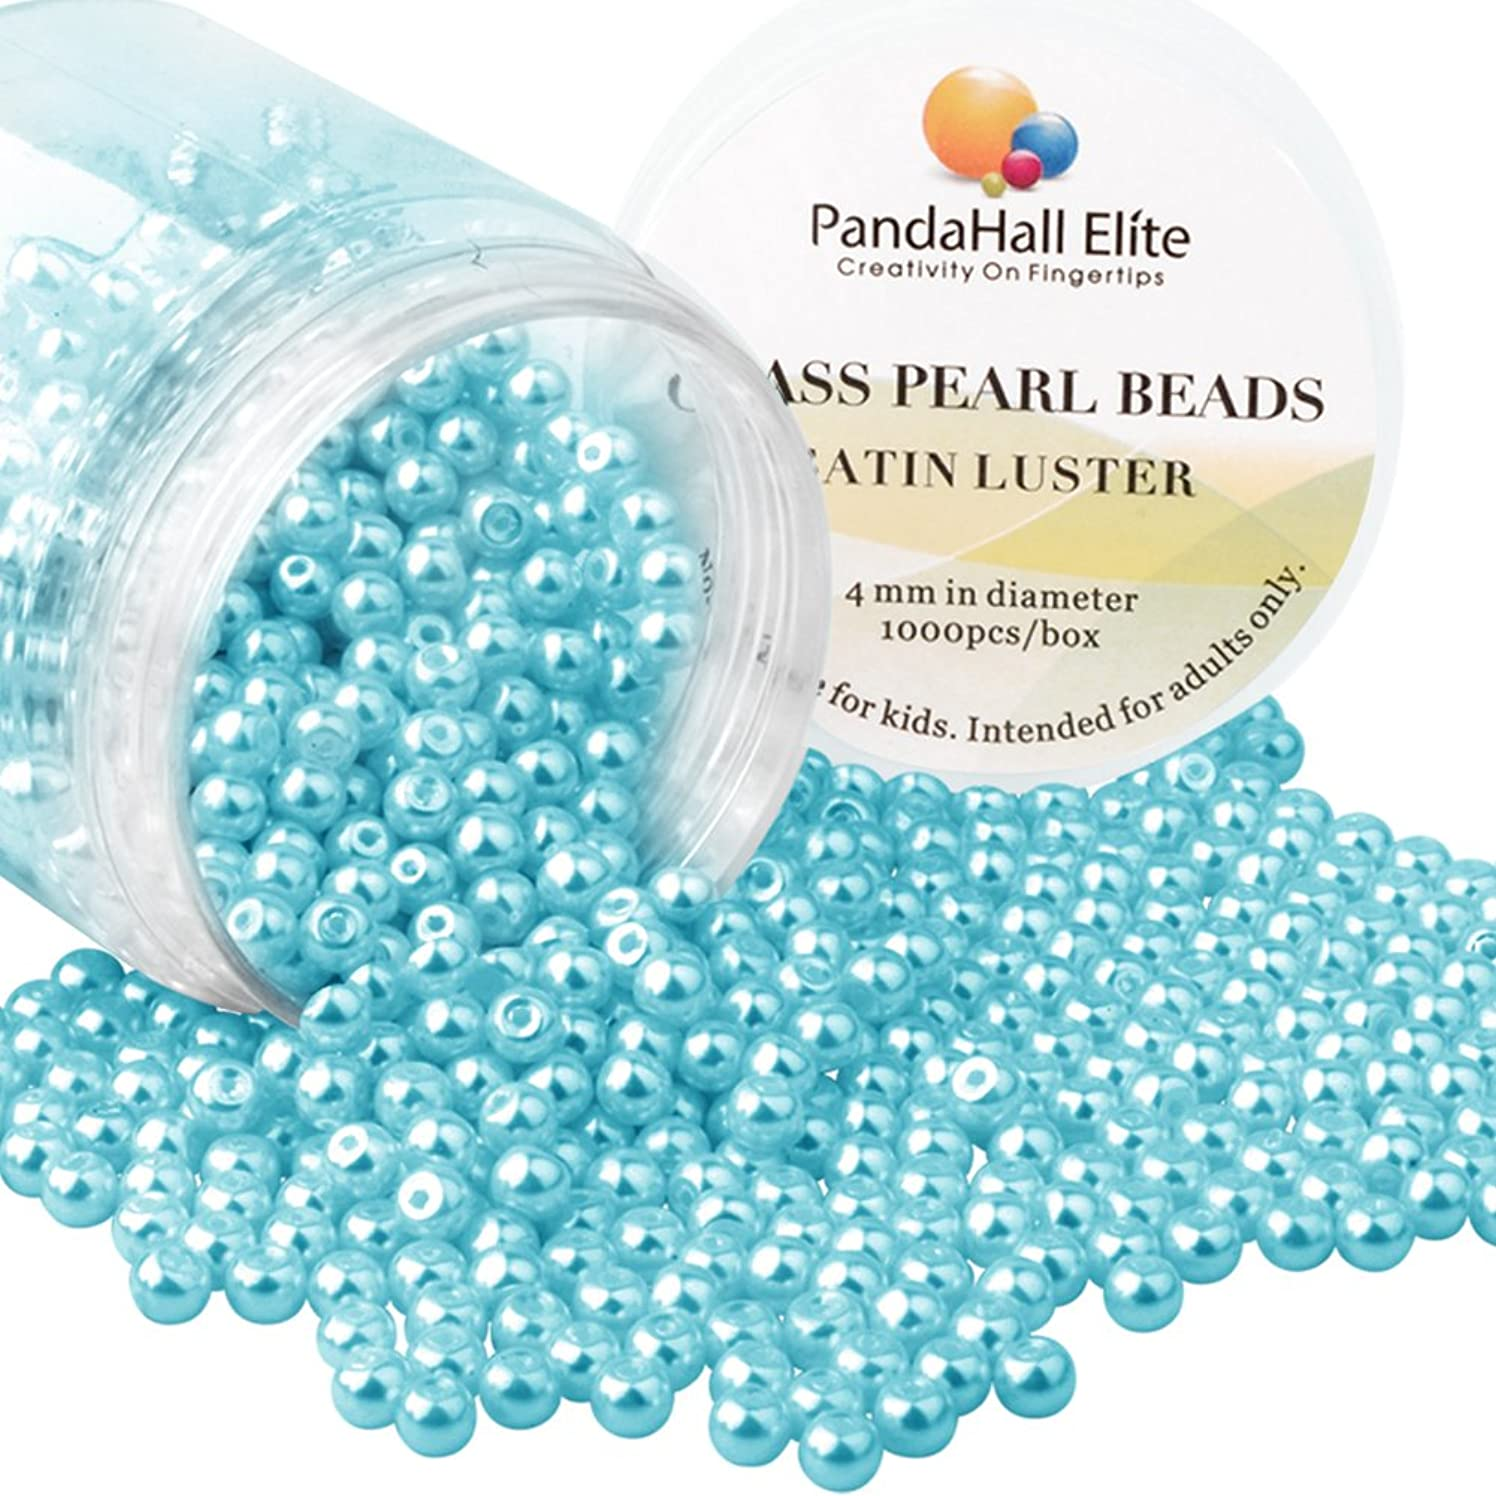 PandaHall Elite 4mm About 1000Pcs Tiny Satin Luster Glass Pearl Round Beads Assortment Lot for Jewelry Making Round Box Kit Sea Serpent